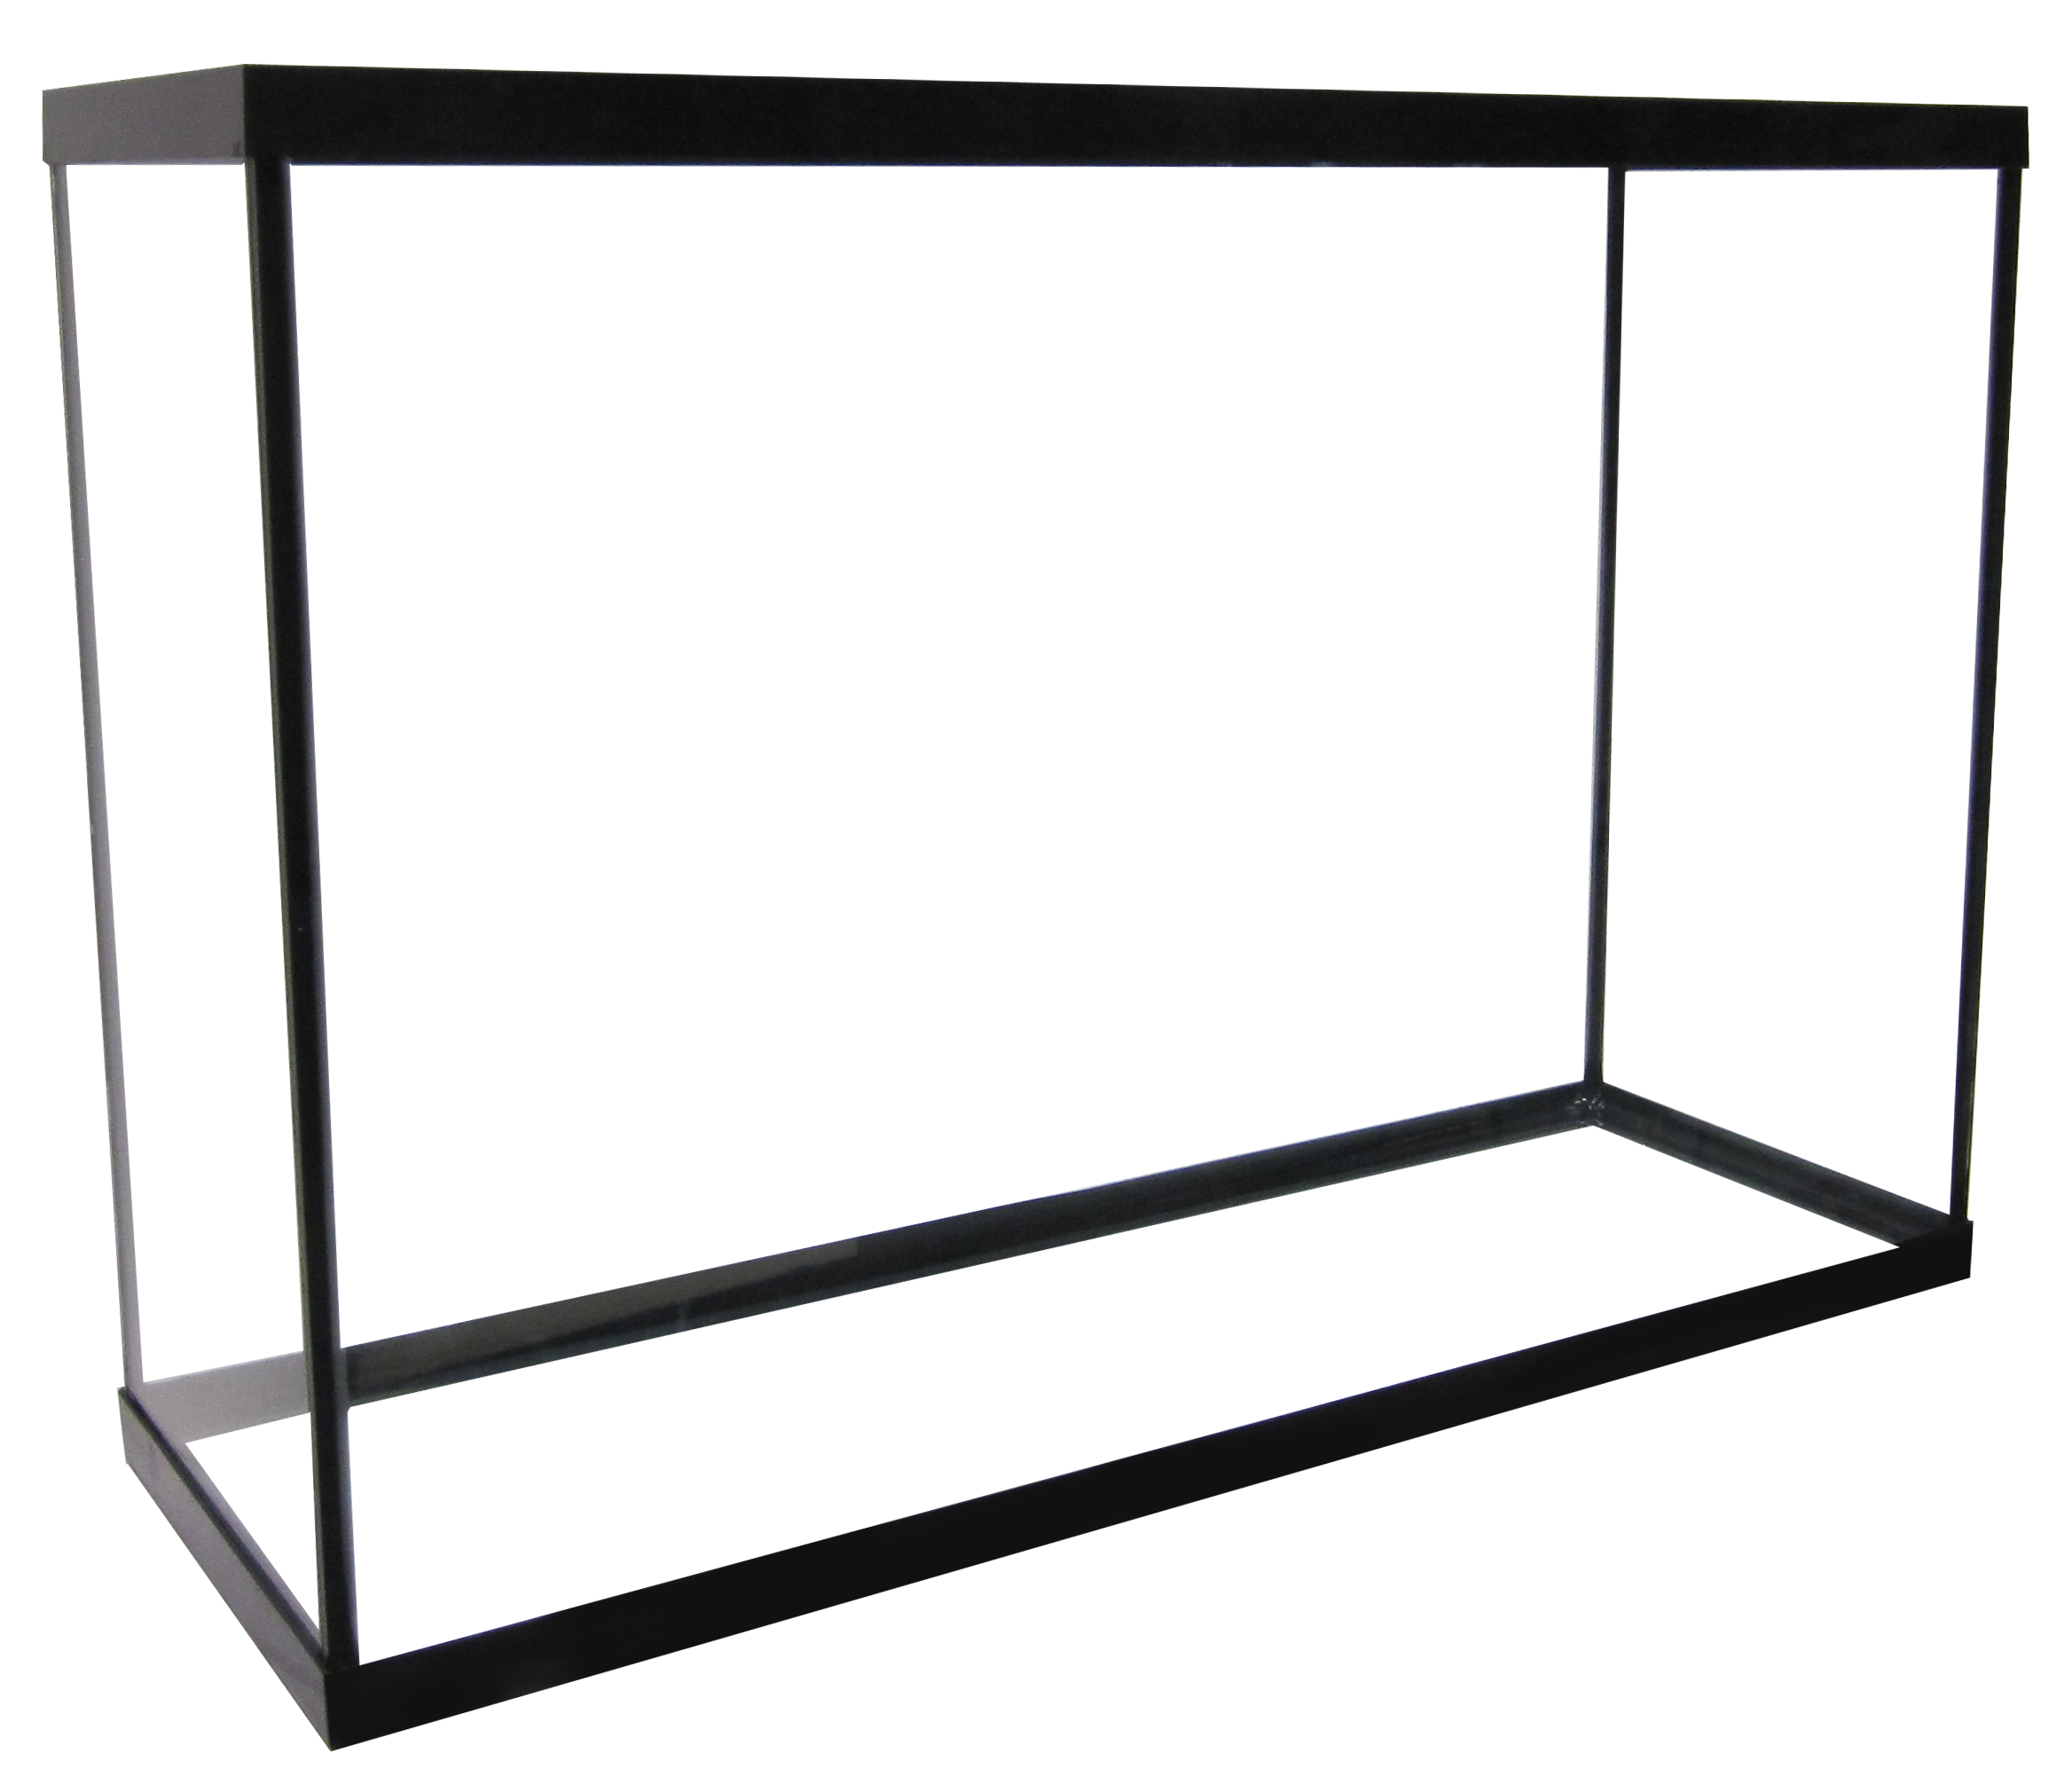 "44 X. High Aquarium - 36x12x24""   SKU#: AM11044  UPC#: 7-49729-11044-6  Product Dimension: 36.13""x12.5""x25""  Capacity: Approximately 44 gallons  Weight: 70.4 lbs"